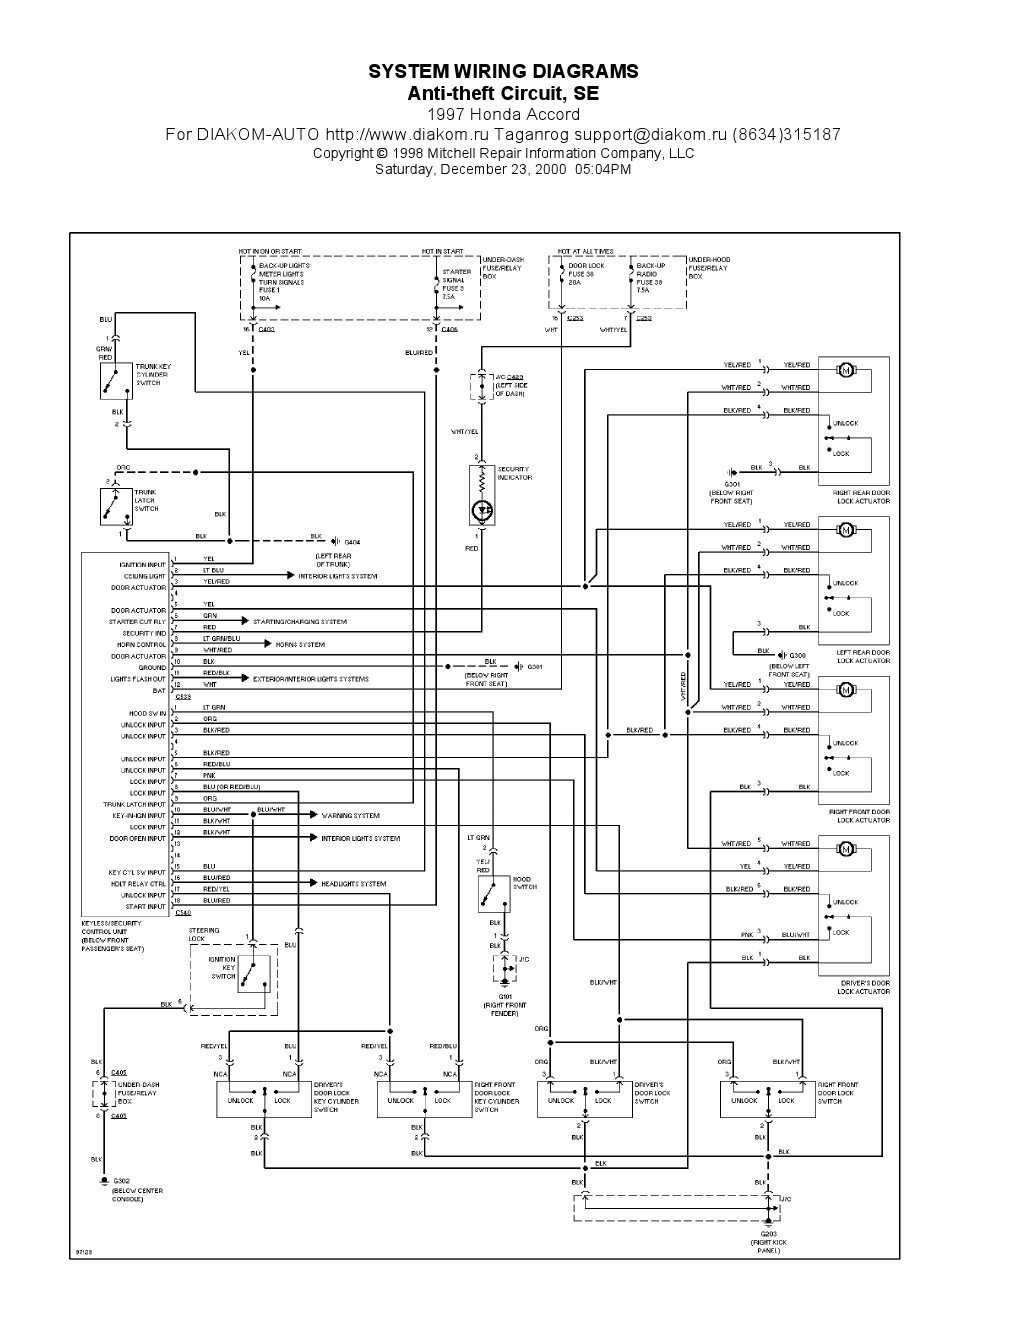 circuit wiring diagram moreover 95 honda accord ecu wiring diagram 97 civic wiring diagram 1994 honda [ 1020 x 1320 Pixel ]